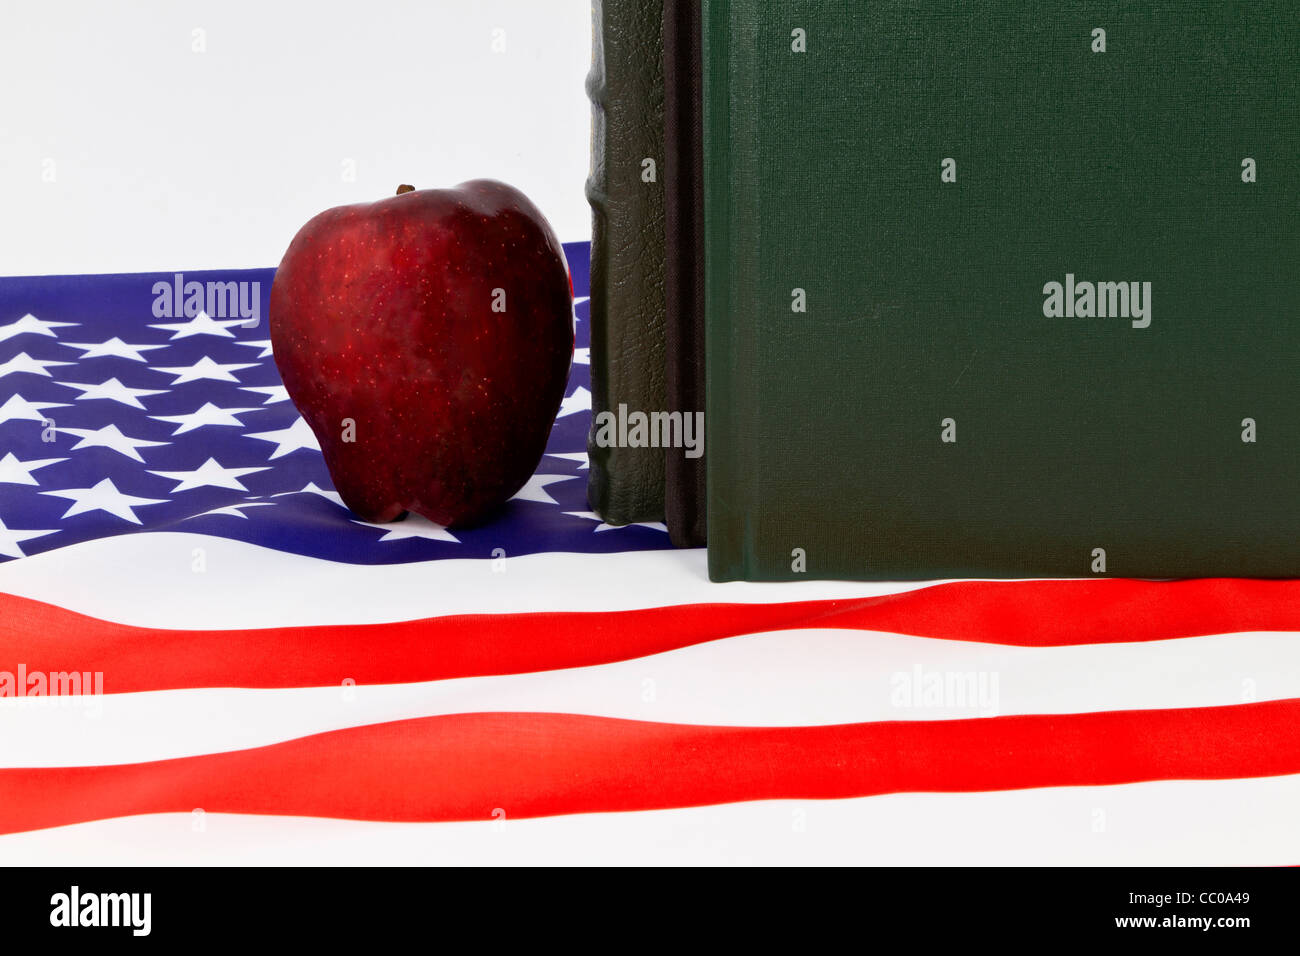 A Red Apple And Books Symbols Of Teachers And Schools Is Placed On